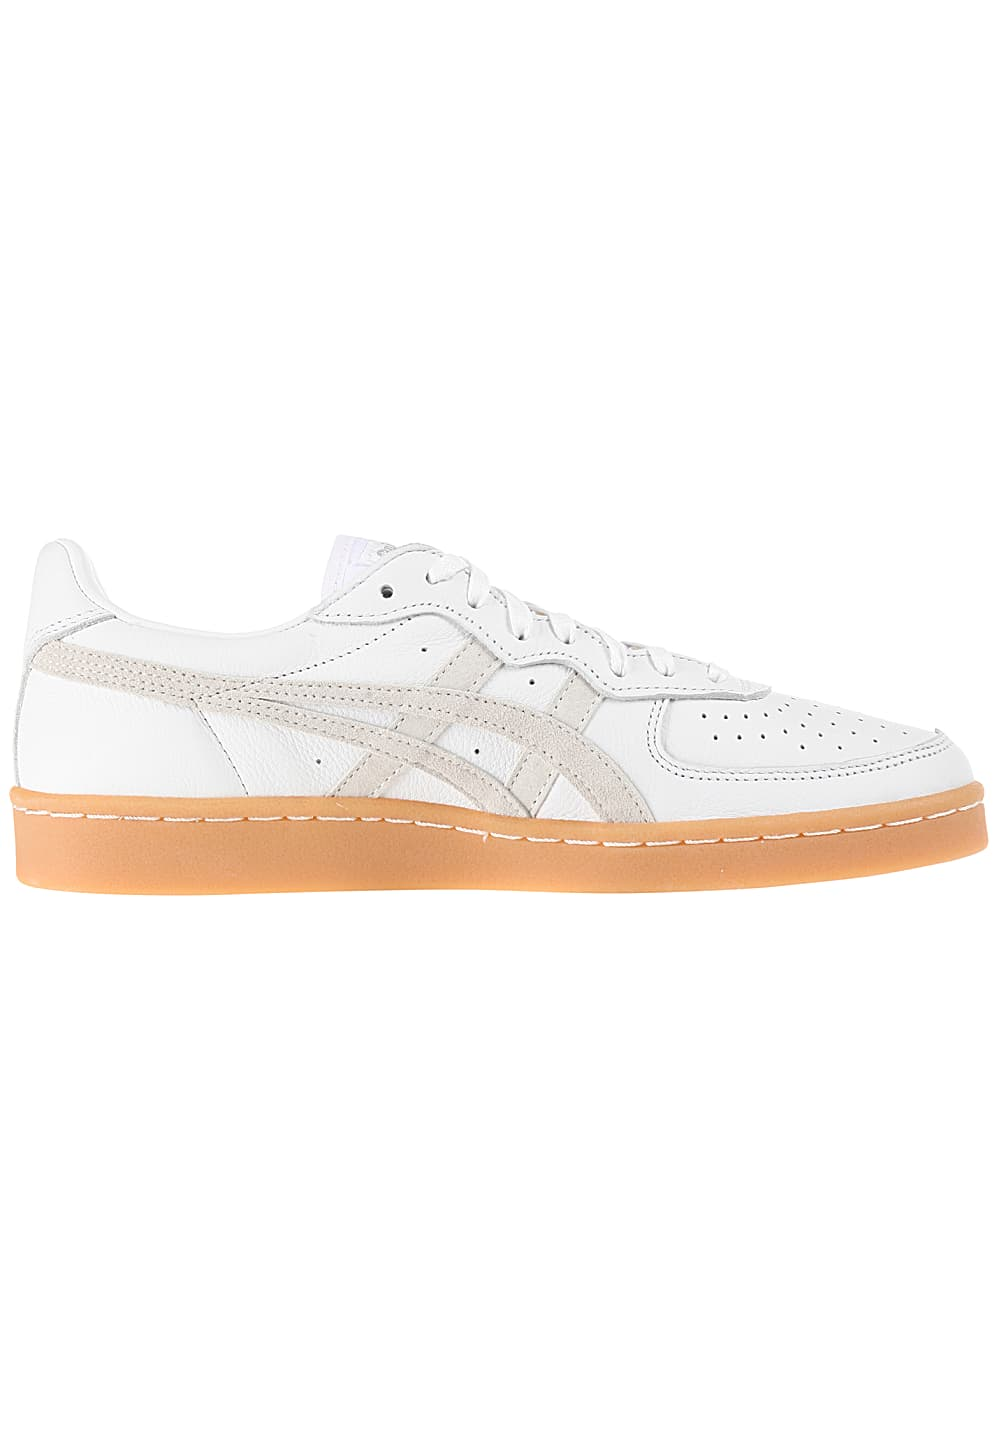 best loved 7c9d0 74b4b Onitsuka Tiger GSM - Sneakers - White